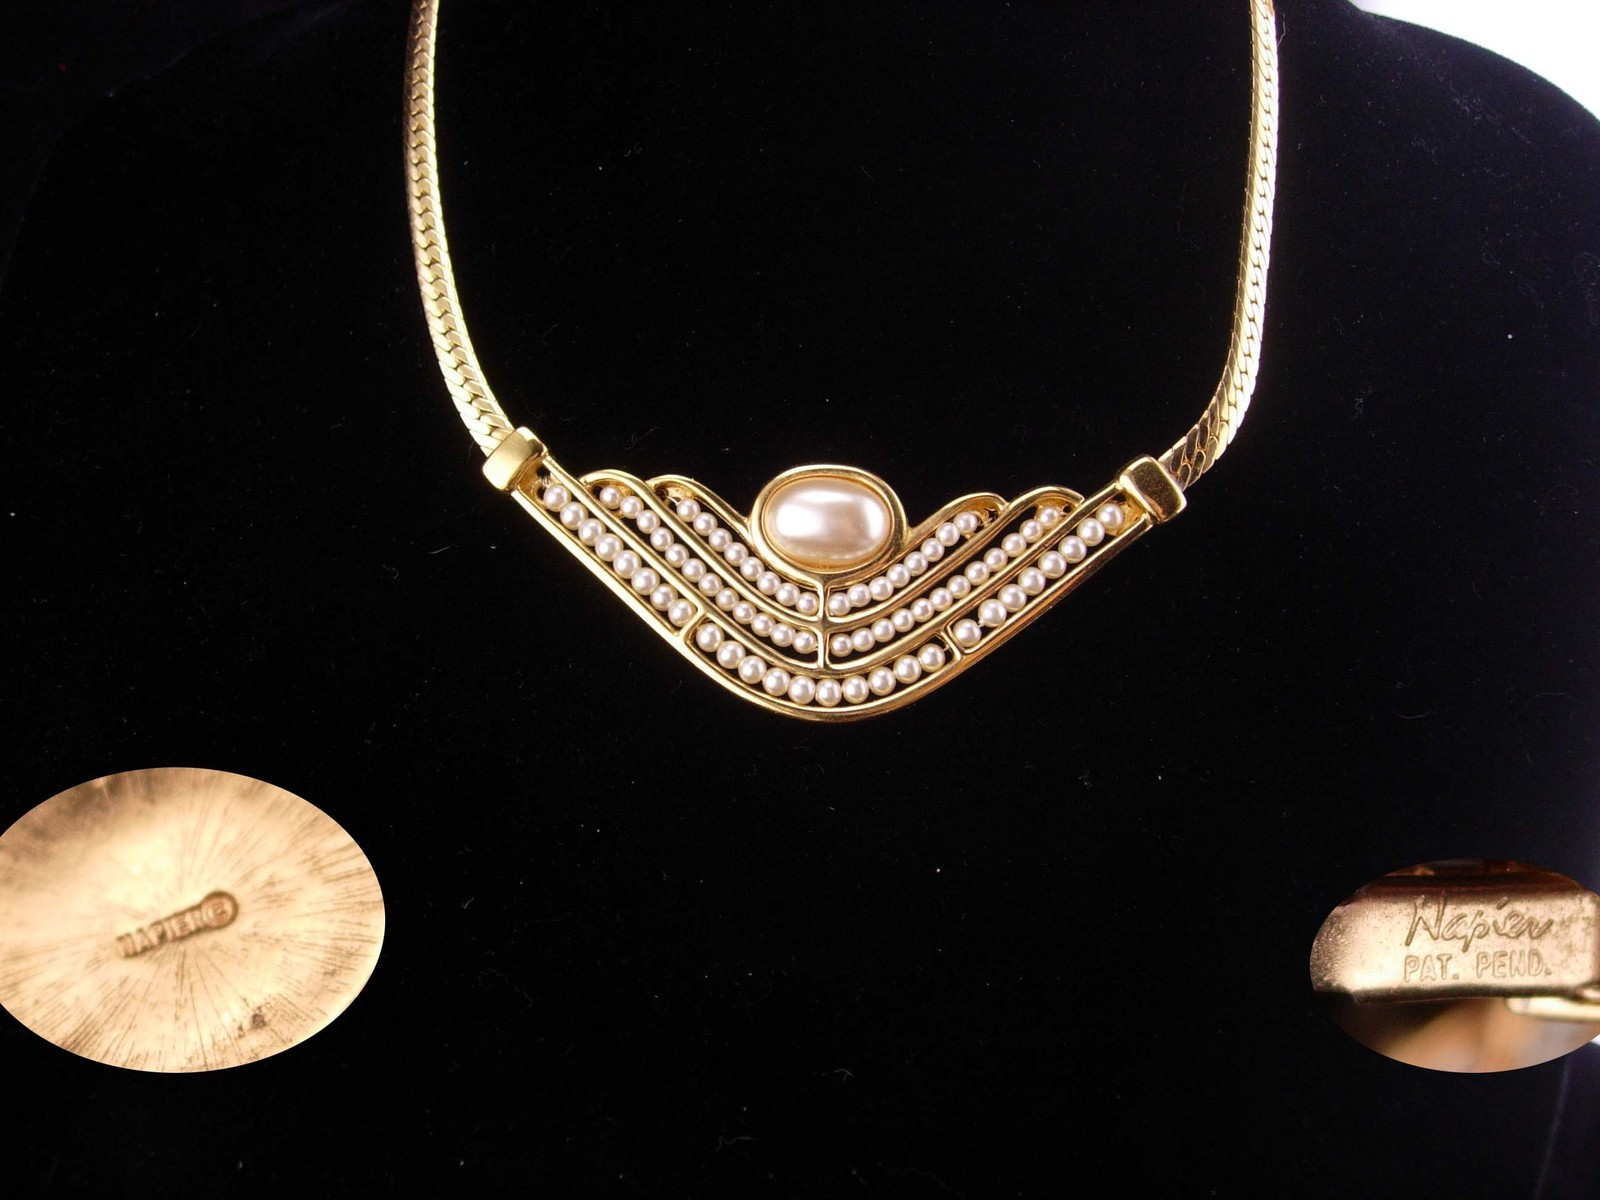 Vintage Napier necklace / hand beaded / gold choker / bridal necklace /  30th an